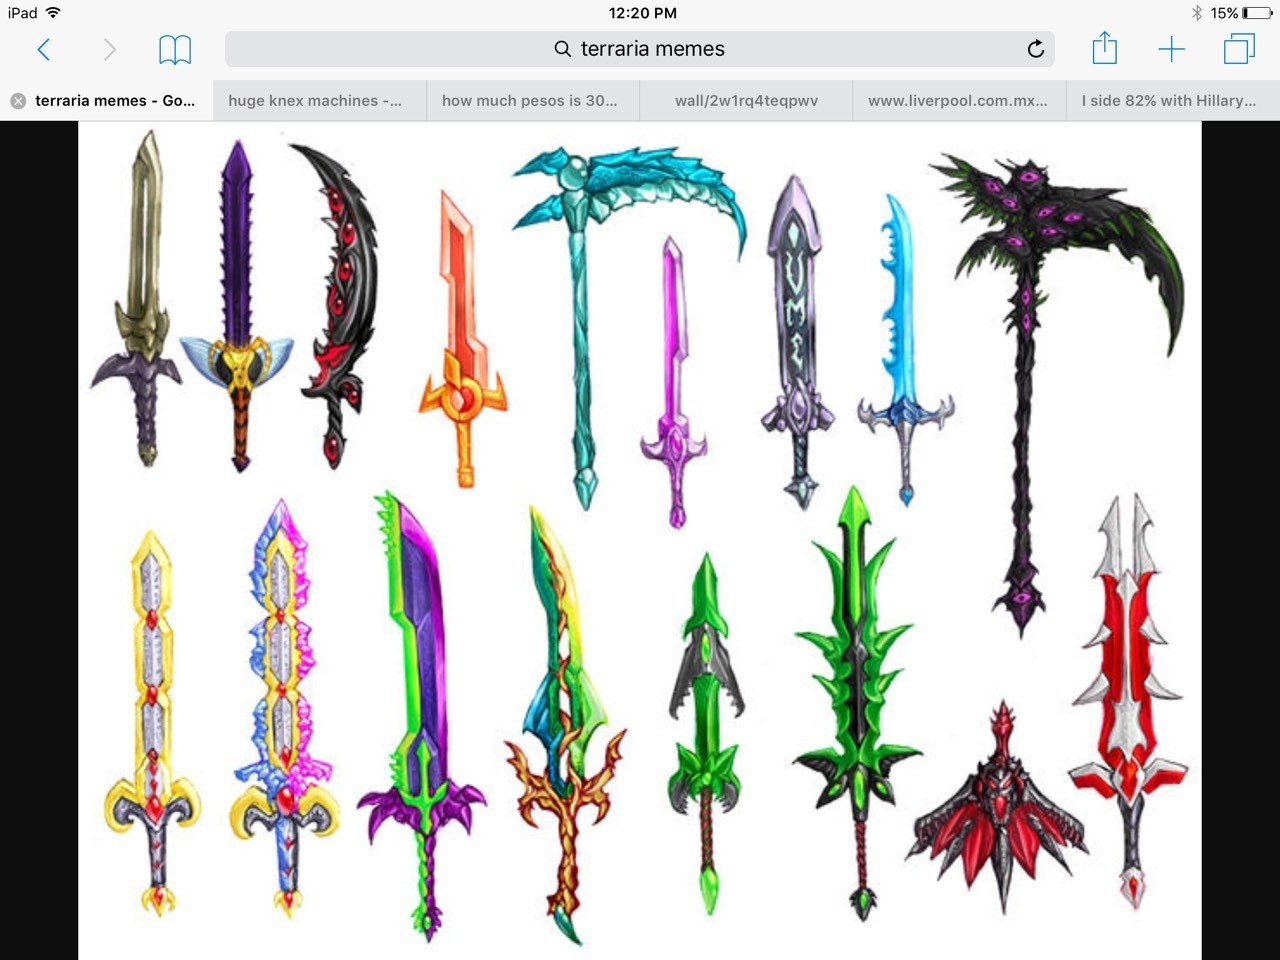 This is what certain weapons in terraria would look like in real life